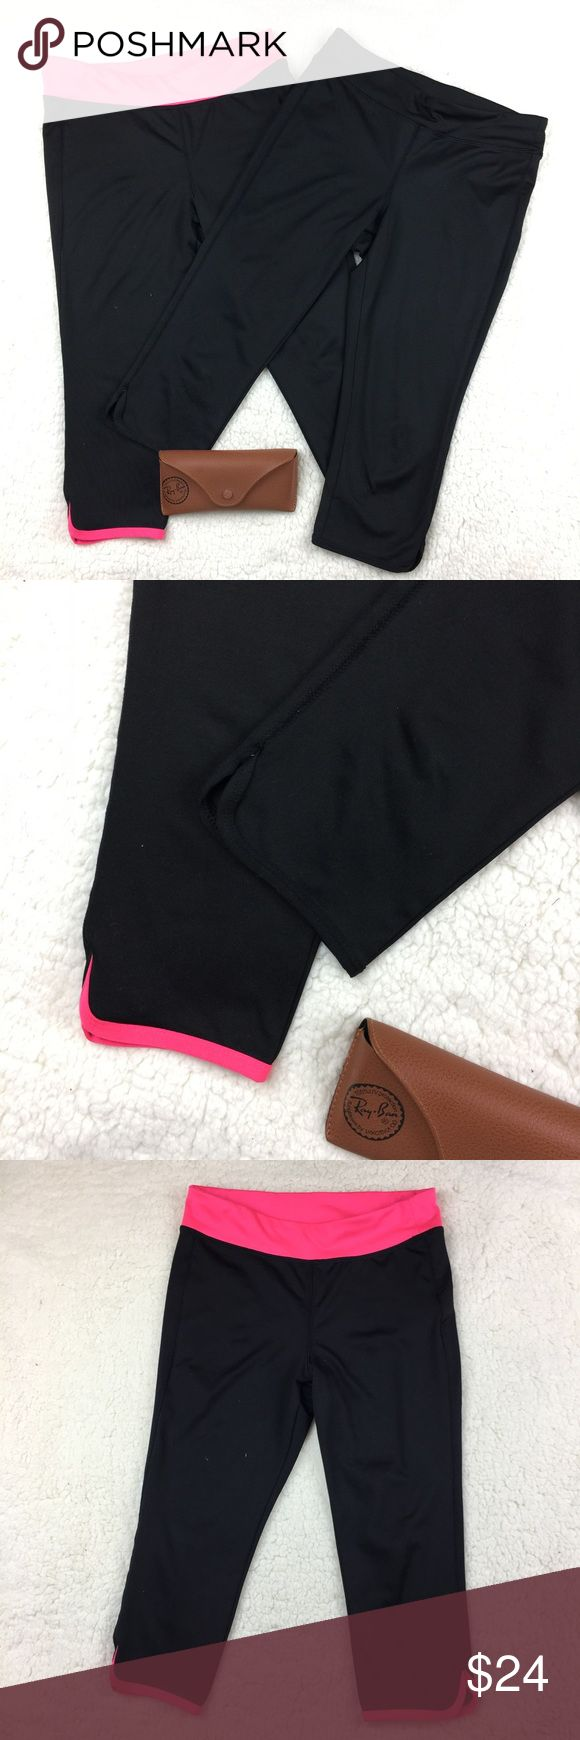 Yoga/gym  Old navi leggings girls size. Like new condition• sell as a bundle• please check the pictures for measurements clarification• Bundle for extra savings• Fast shipping • Old Navy Bottoms Sweatpants & Joggers